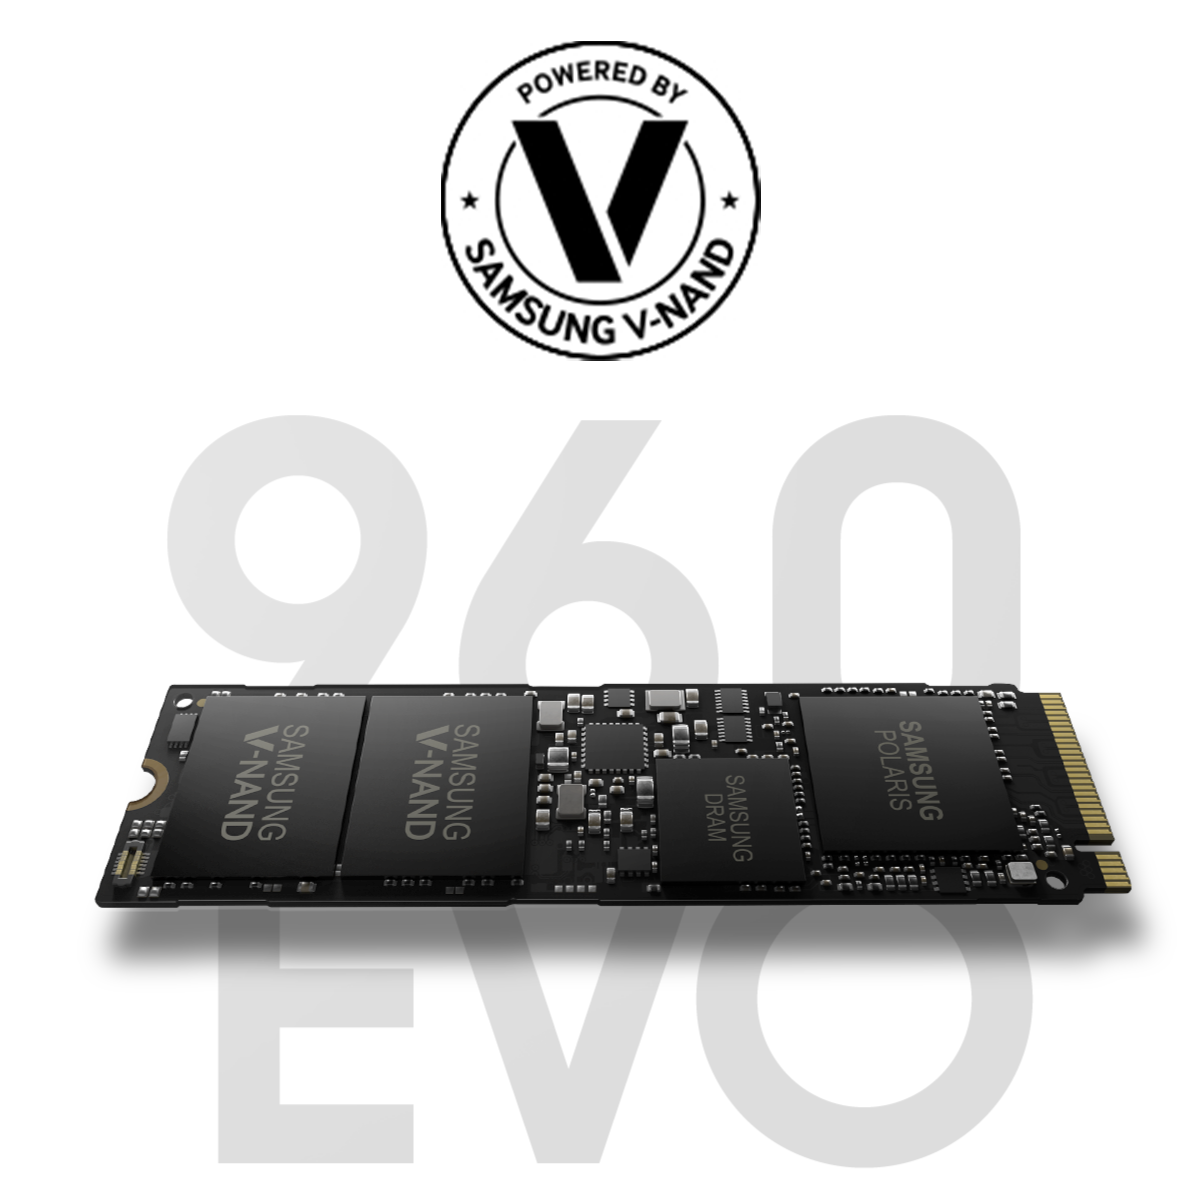 evodie-clevere-wahl-bei-nvme-ssds